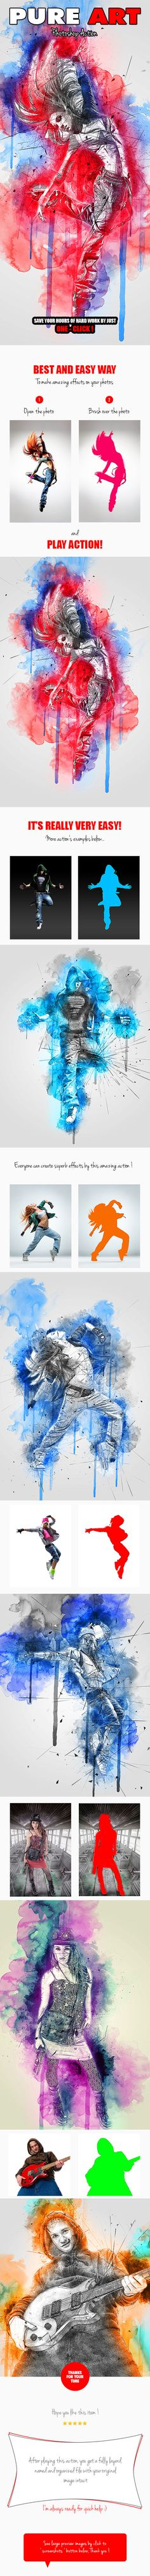 Pure Art Photoshop Action. Download here: https://graphicriver.net/item/pure-art-photoshop-action/17170951?ref=ksioks